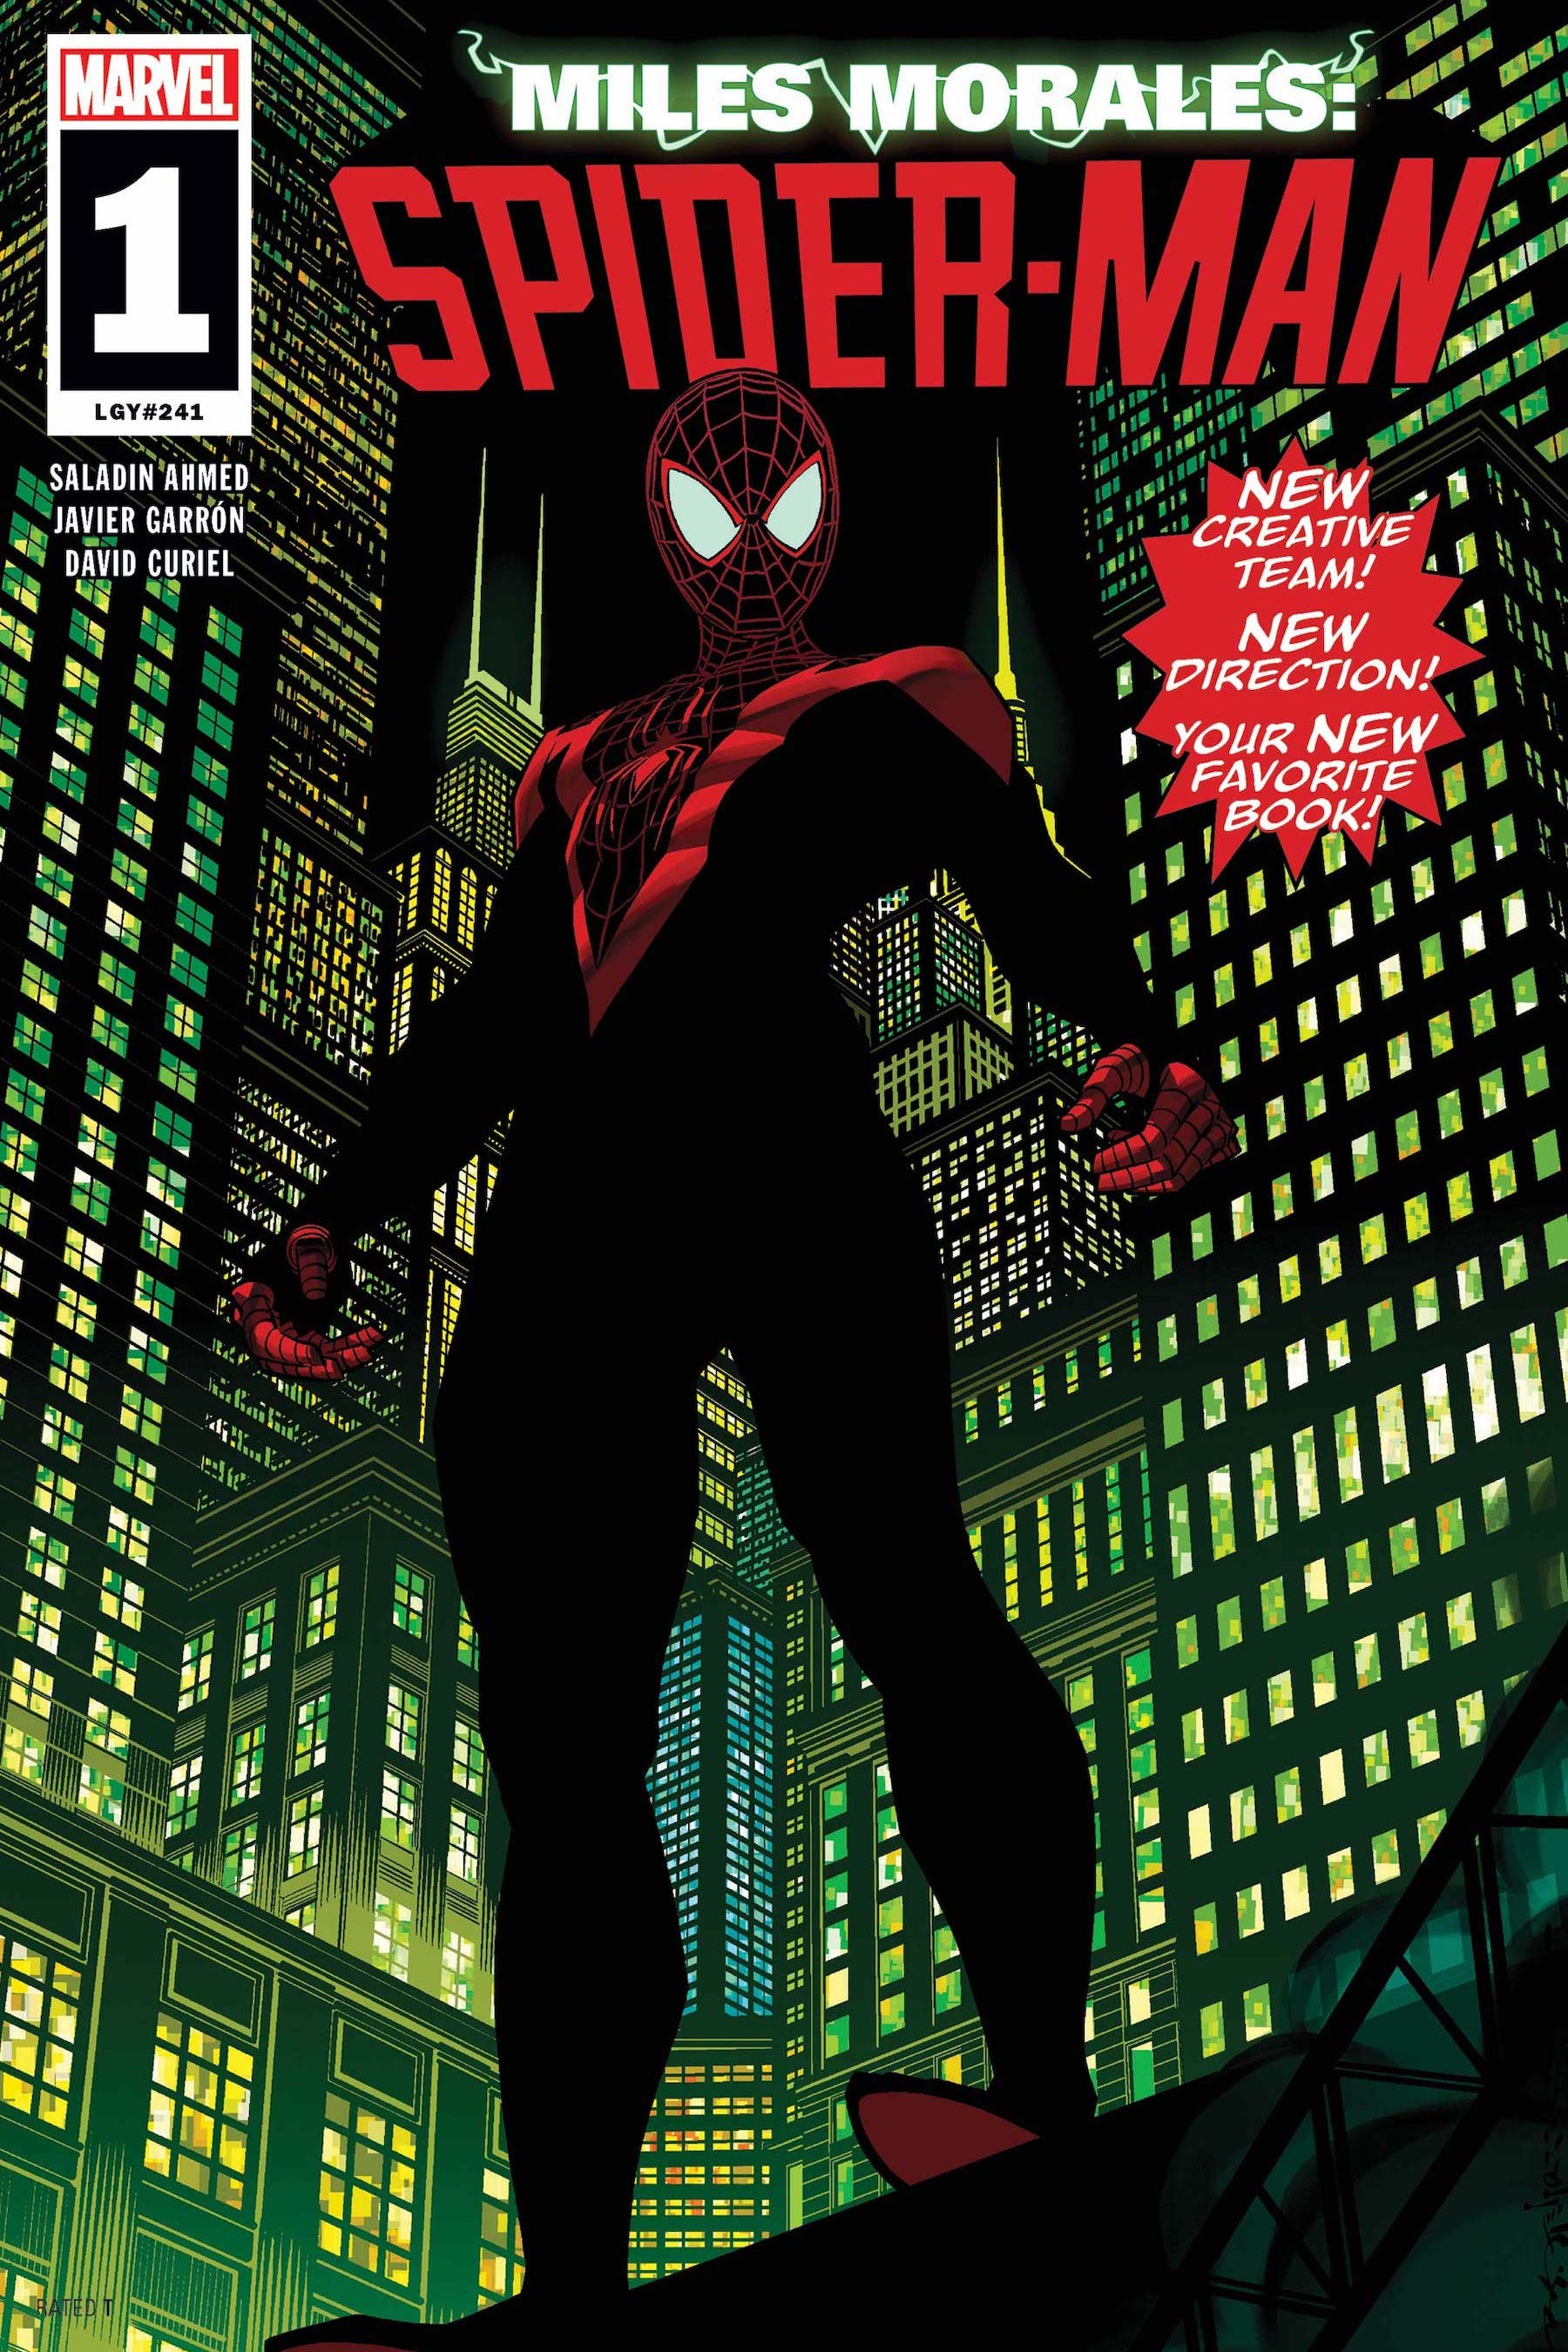 DeVonta Smith by Francesco Manna and Carlos Lopez, after MILES MORALES: SPIDER-MAN #1 byBrian Stelfreeze